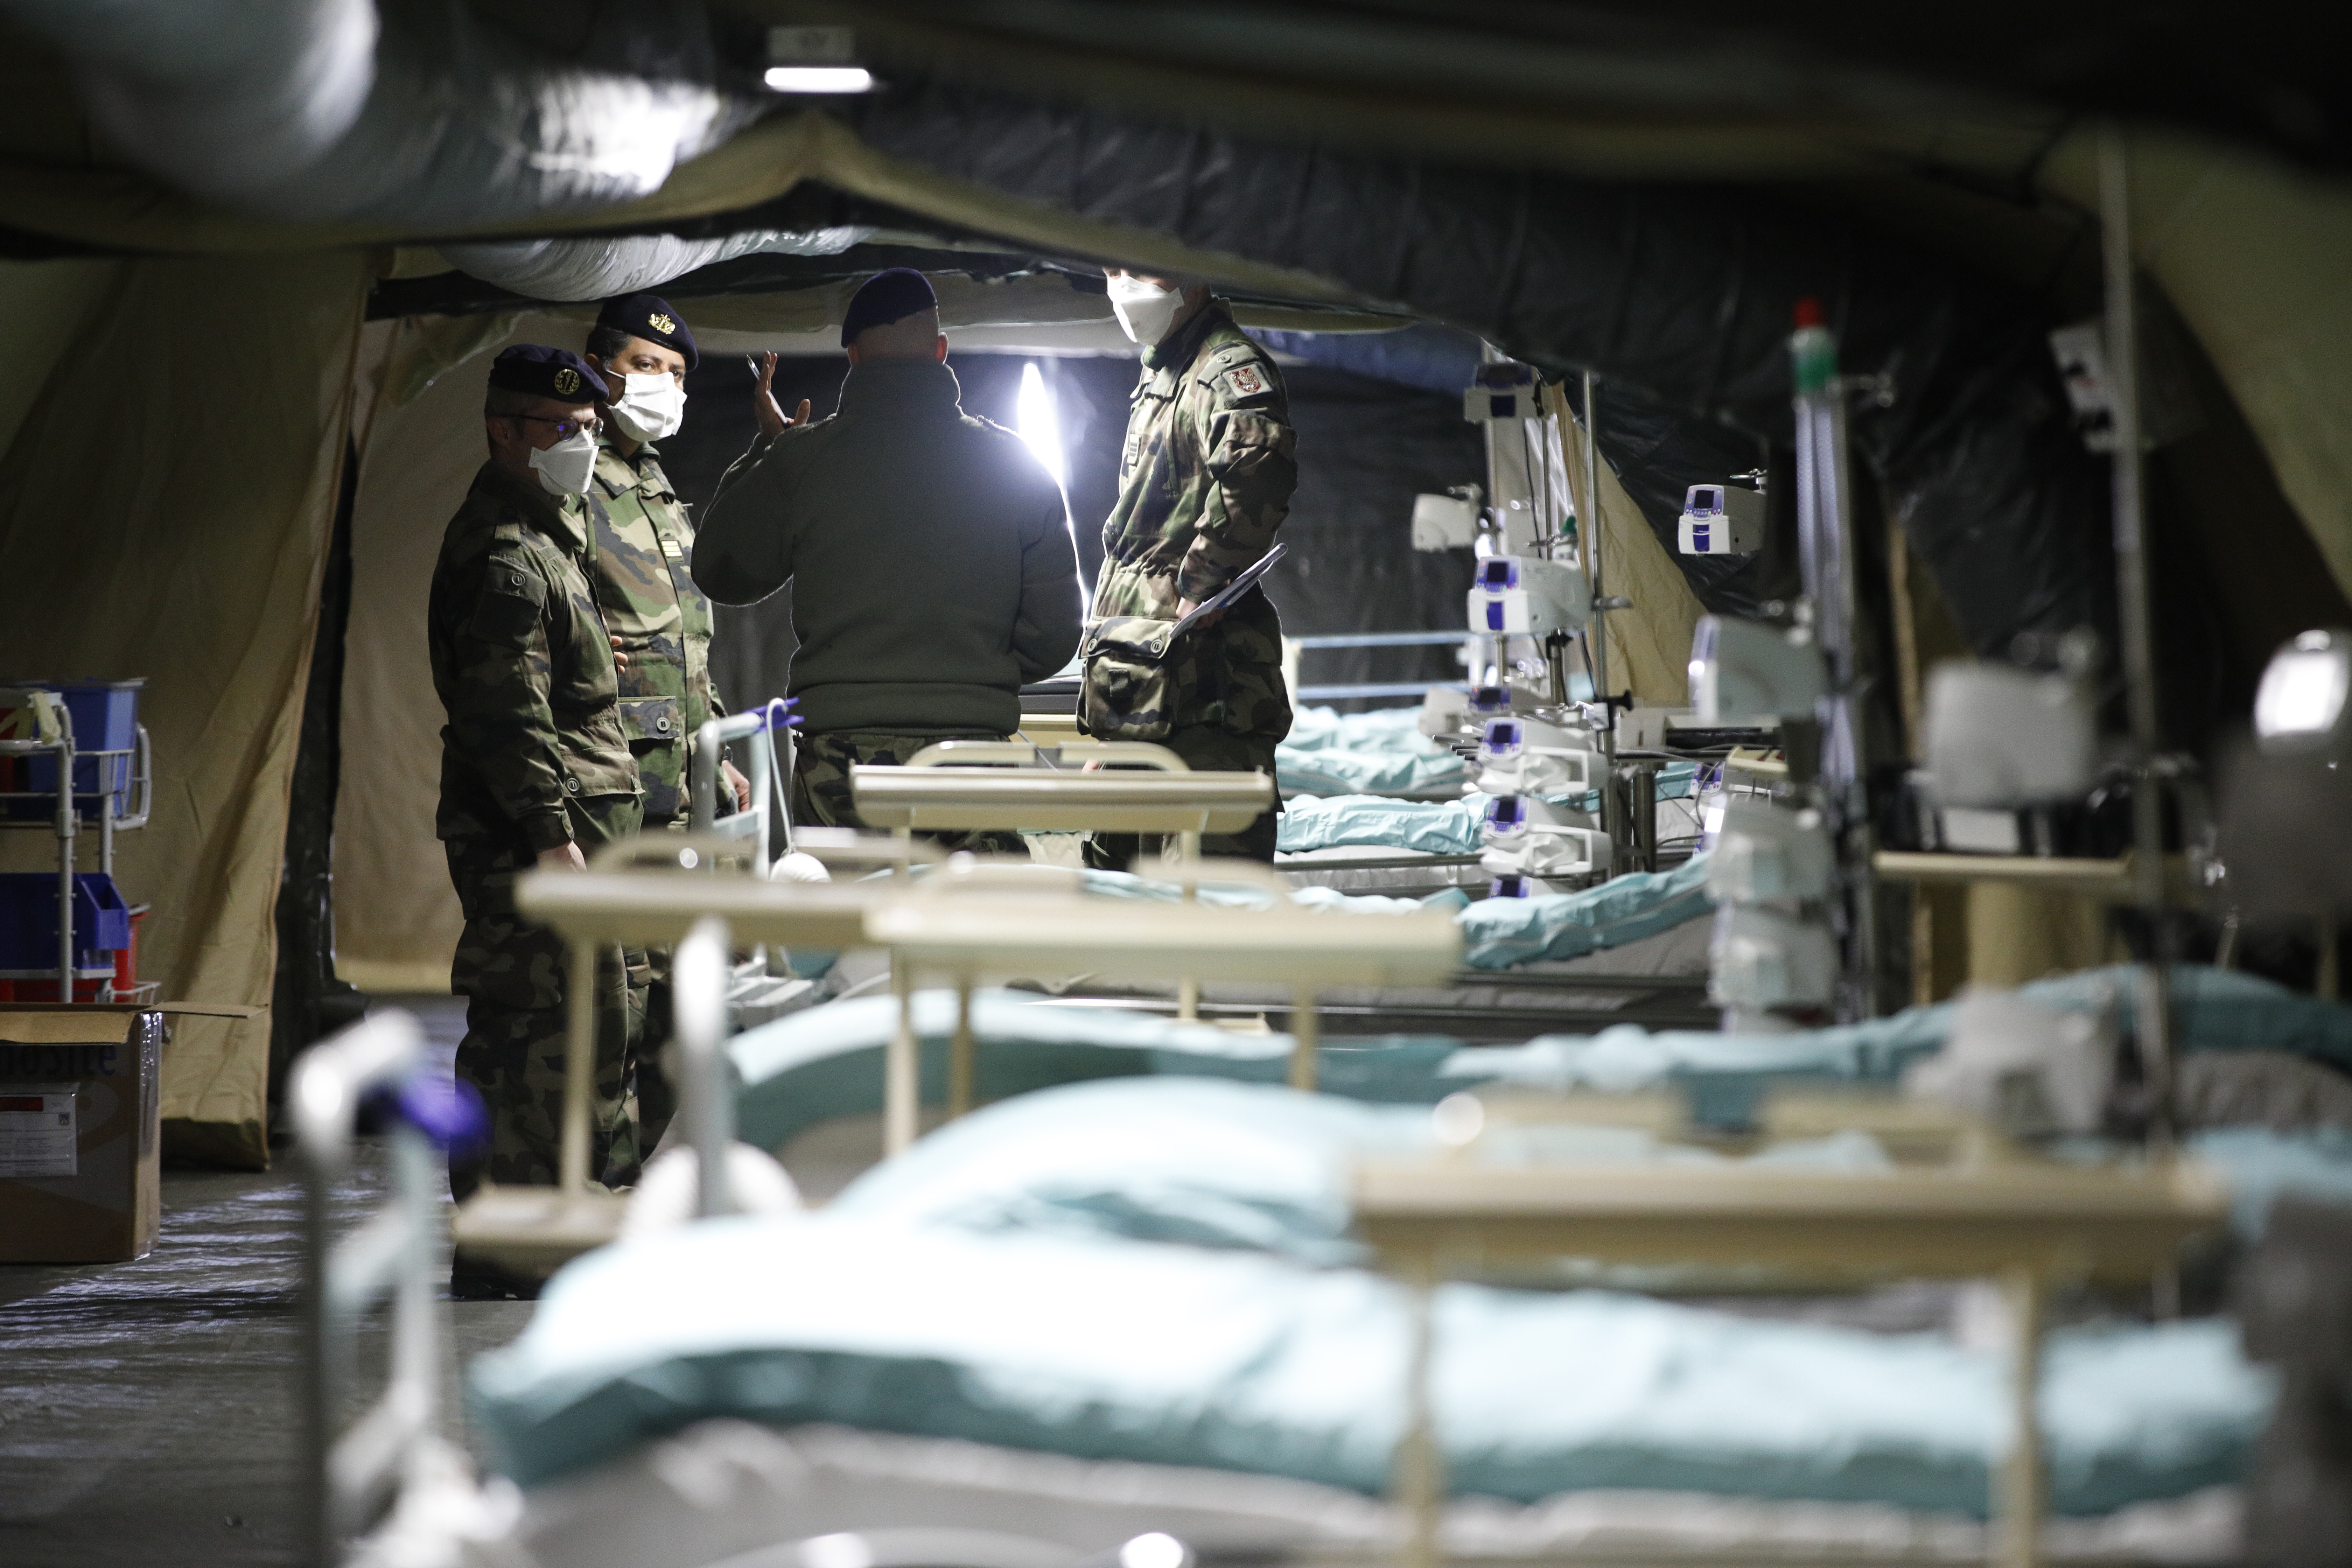 French soldiers discuss inside the military field hospital built in Mulhouse, eastern France, Monday March 23, 2020. The Grand Est region is now the epicenter of the outbreak in France, which has buried the third most virus victims in Europe, after Italy and Spain. For most people, the new coronavirus causes only mild or moderate symptoms. For some it can cause more severe illness. (AP Photo/Jean-Francois Badias)